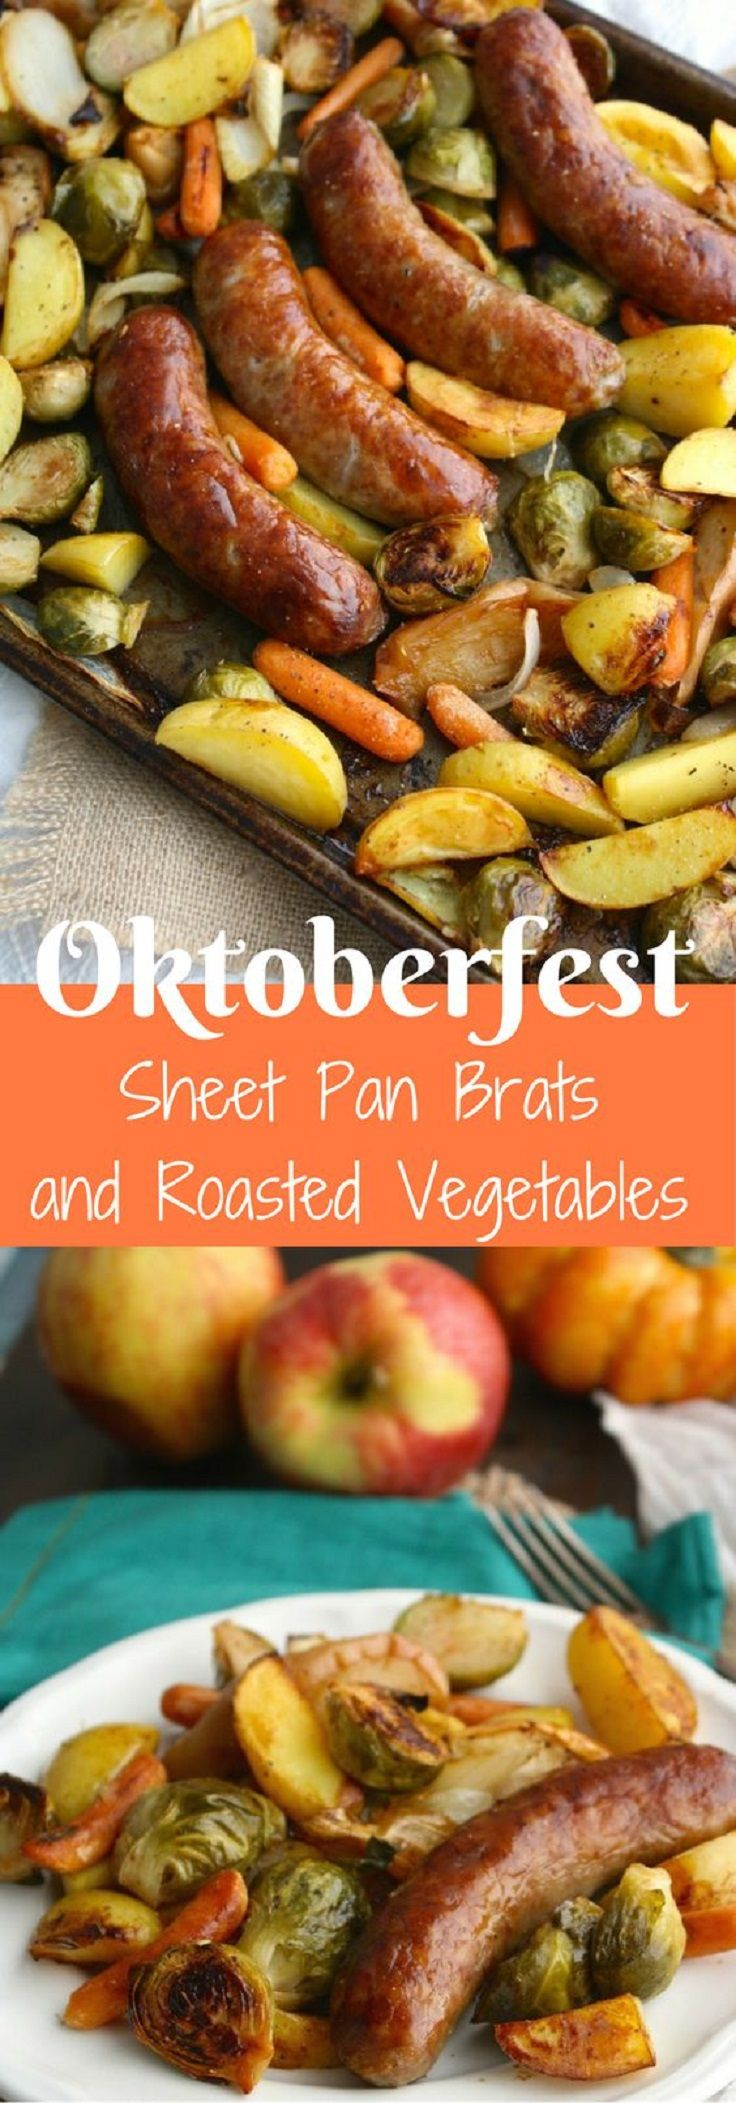 Oktoberfest Sheet Pan Brats with Roasted Vegetables - 16 Magnificent Fall Dinner Ideas to Help You Get Prepared to Hibernate